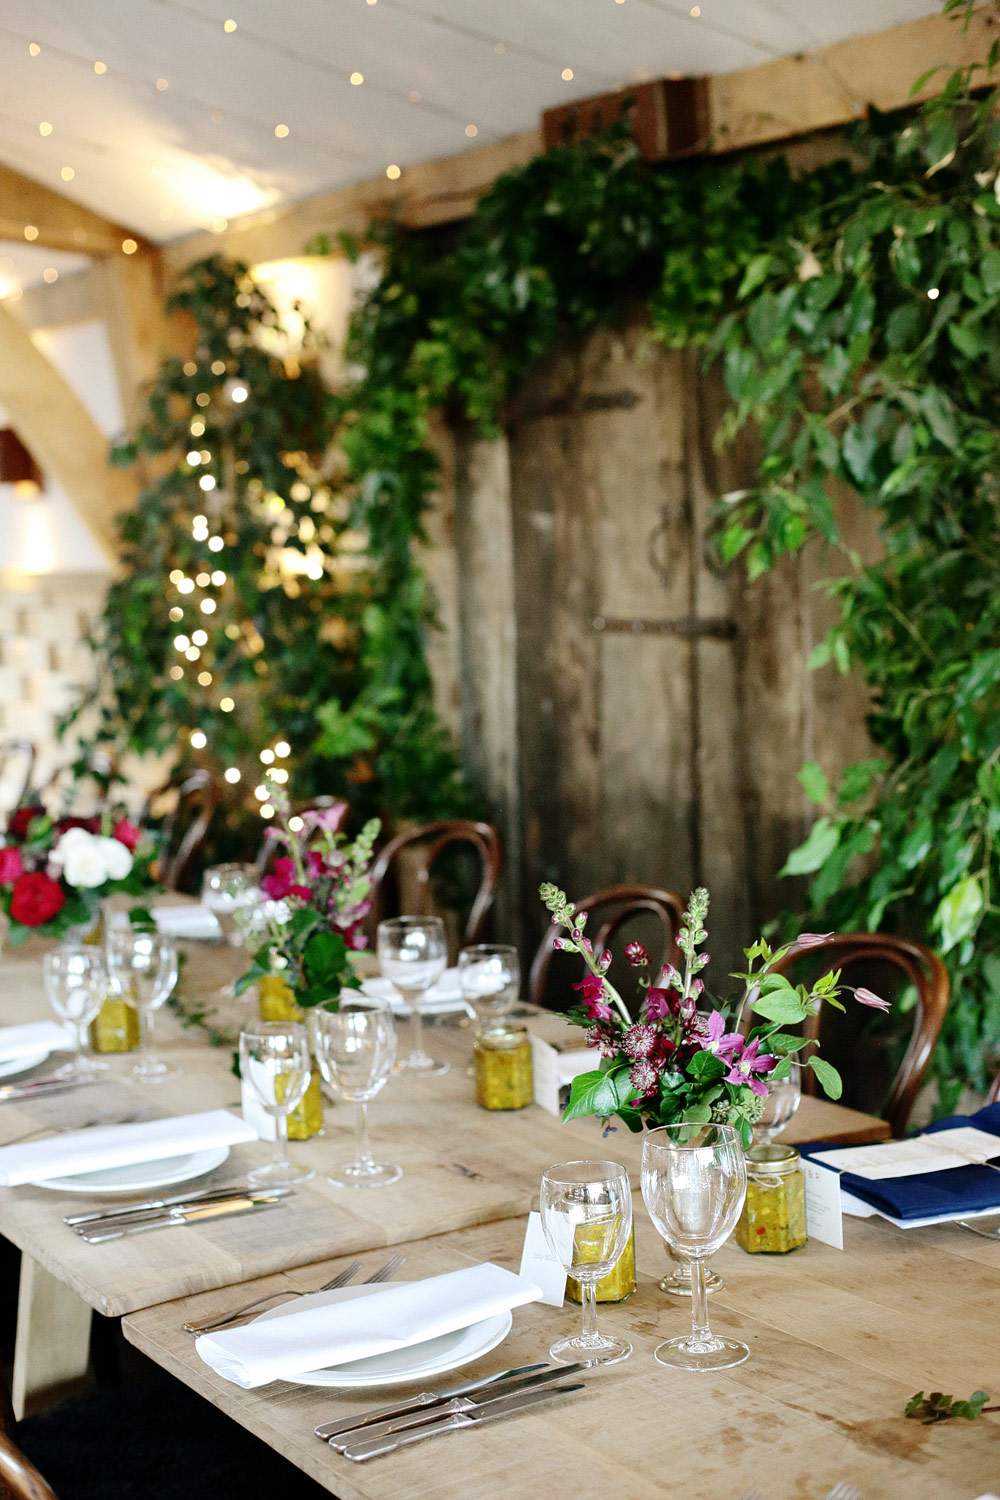 foliage wedding decor at cripps barn wedding venue